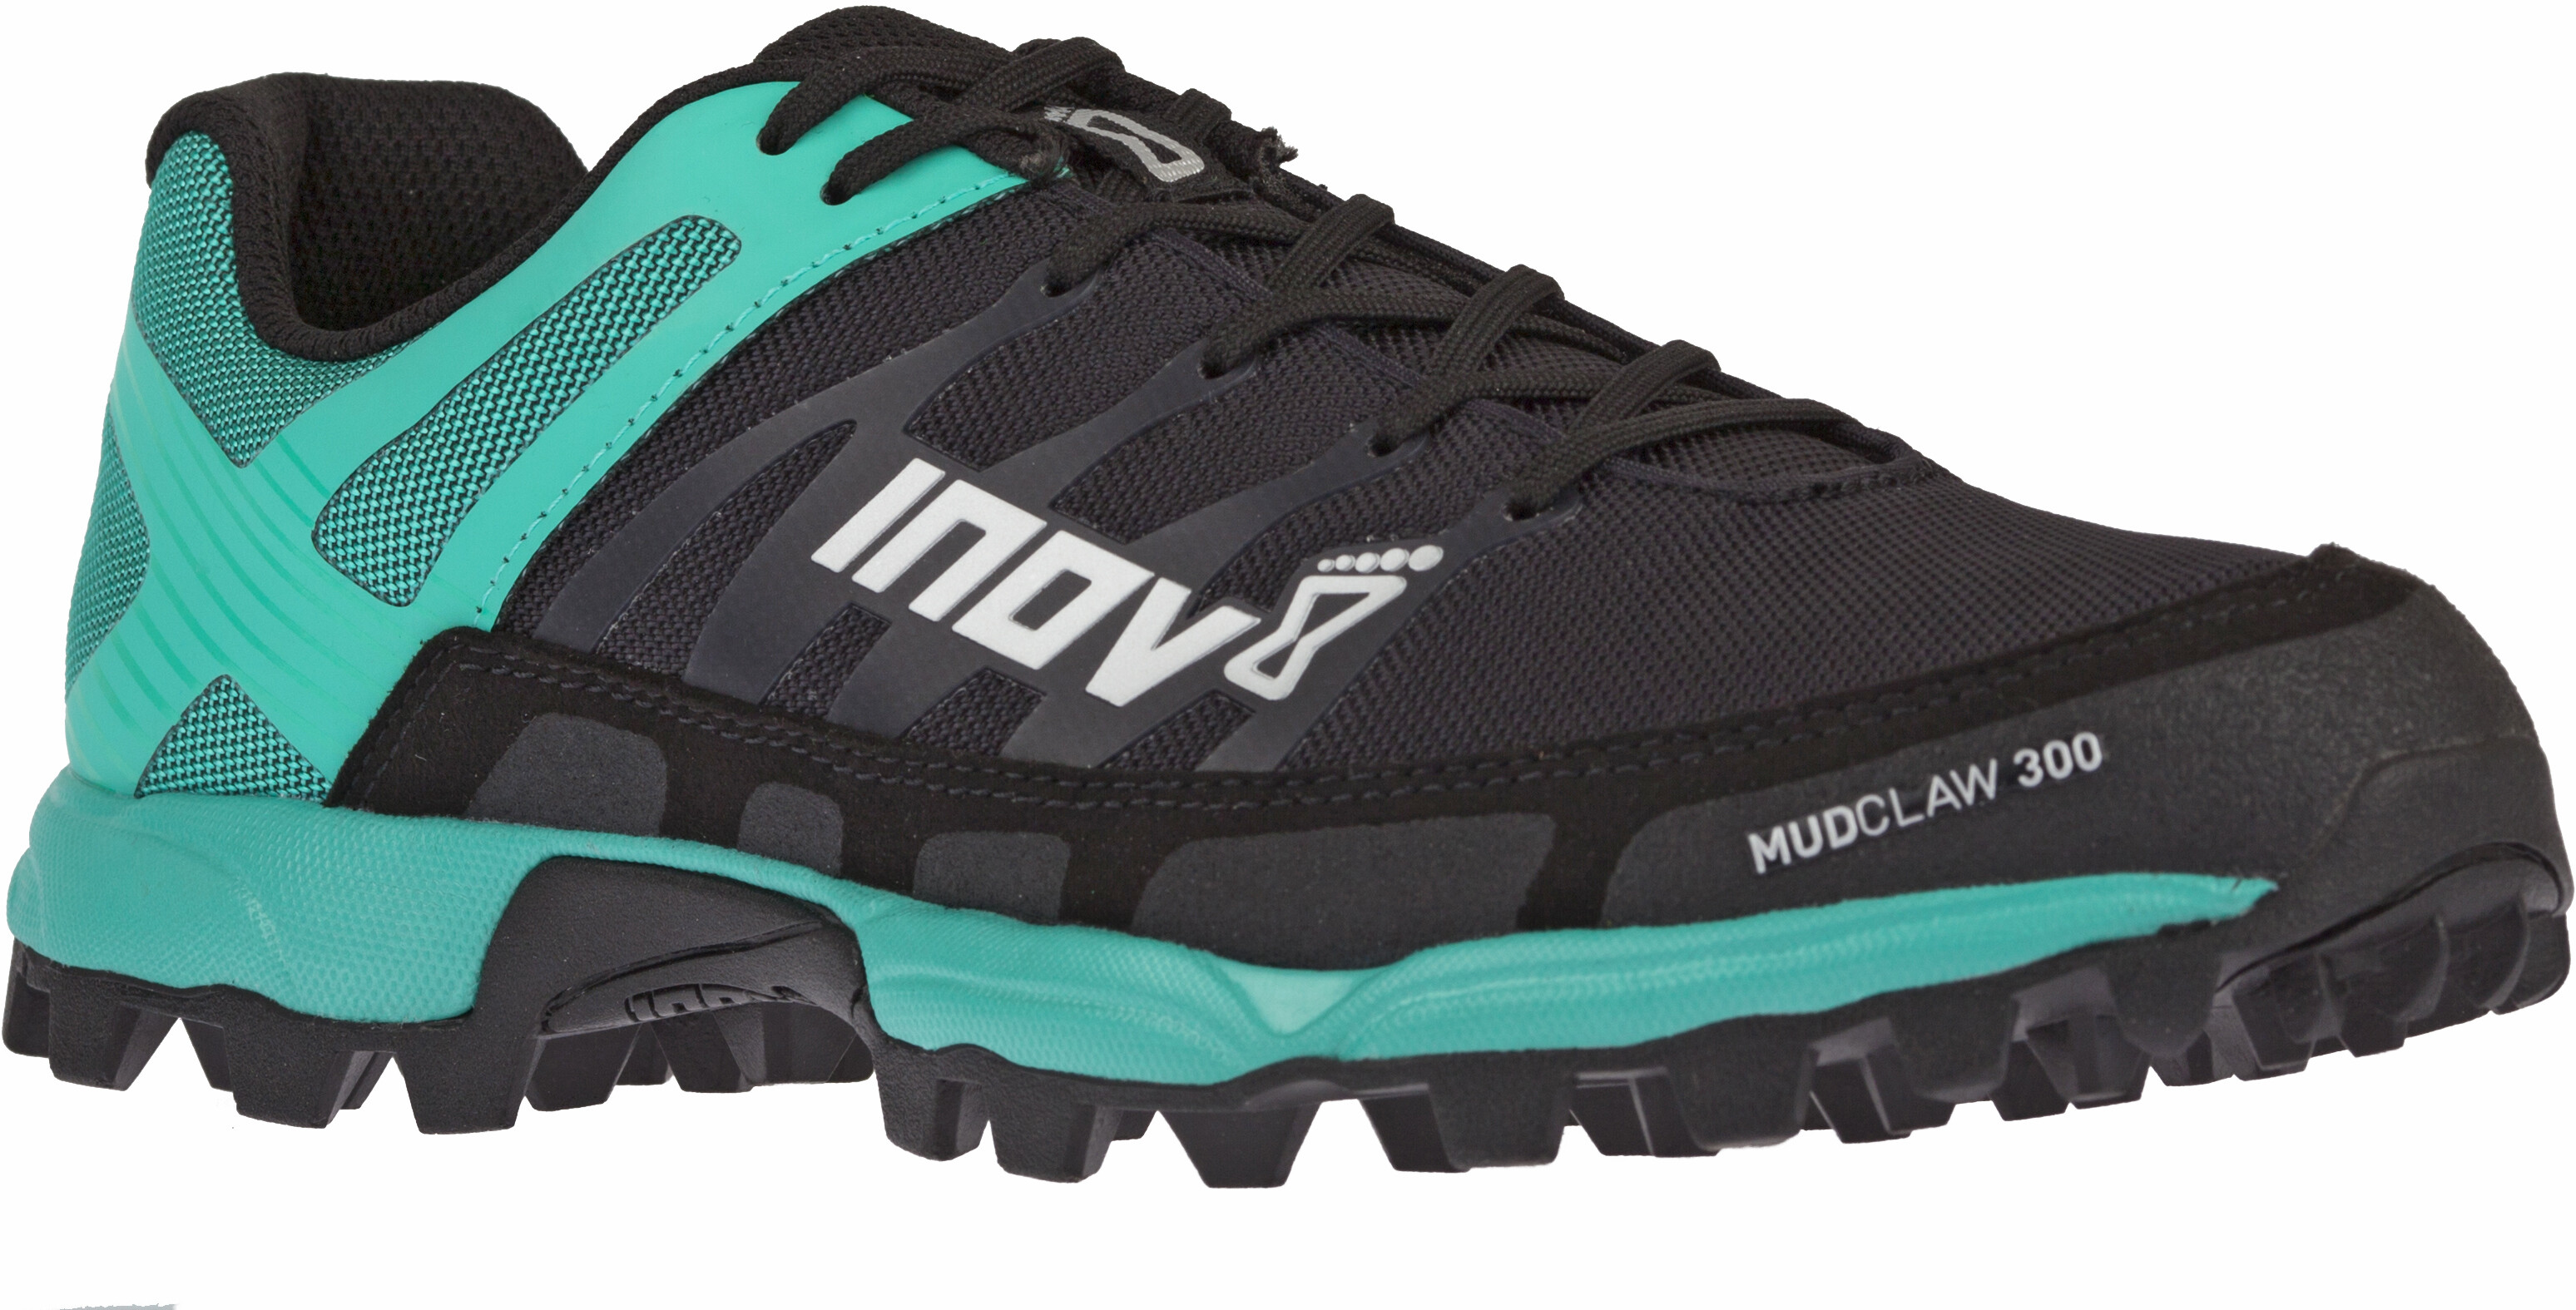 4776ddce393 inov-8 W's Mudclaw 300 Running Shoes Black/Teal - addnature.com